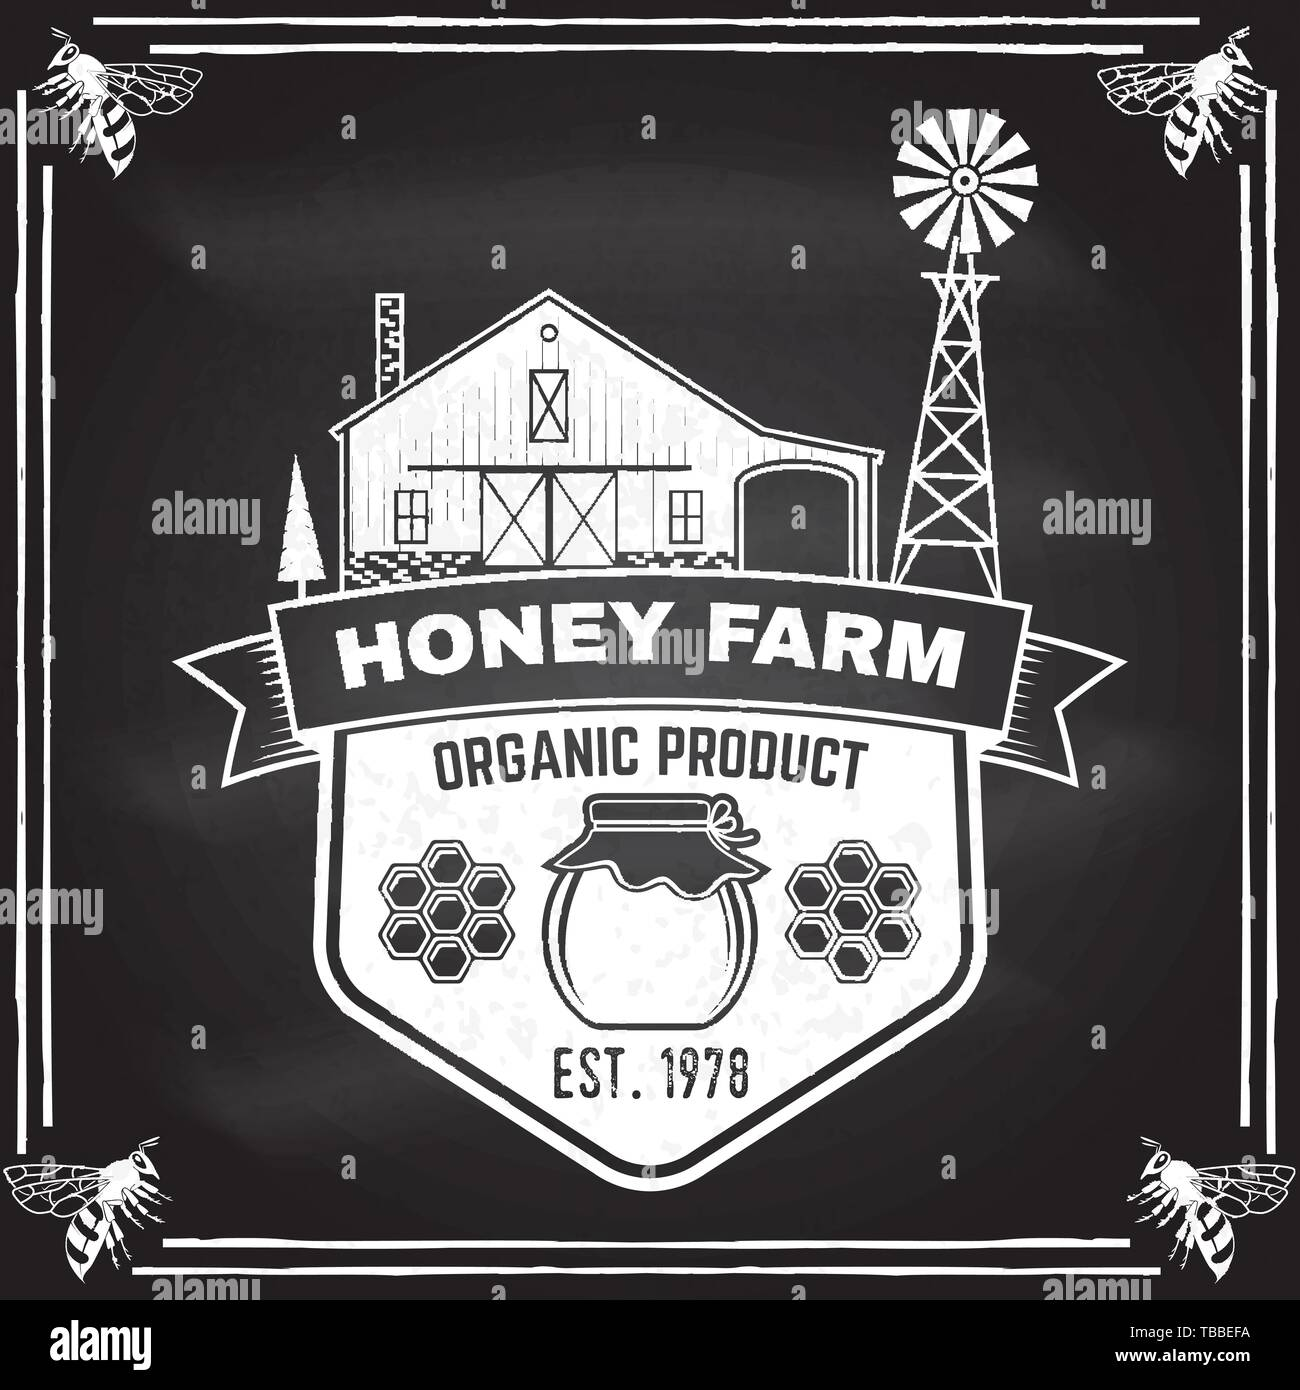 Honey farm badge. Vector on the chalkboard. Concept for shirt, print, stamp or tee. Vintage typography design with honey silhouette. Retro design for honey bee farm business - Stock Vector